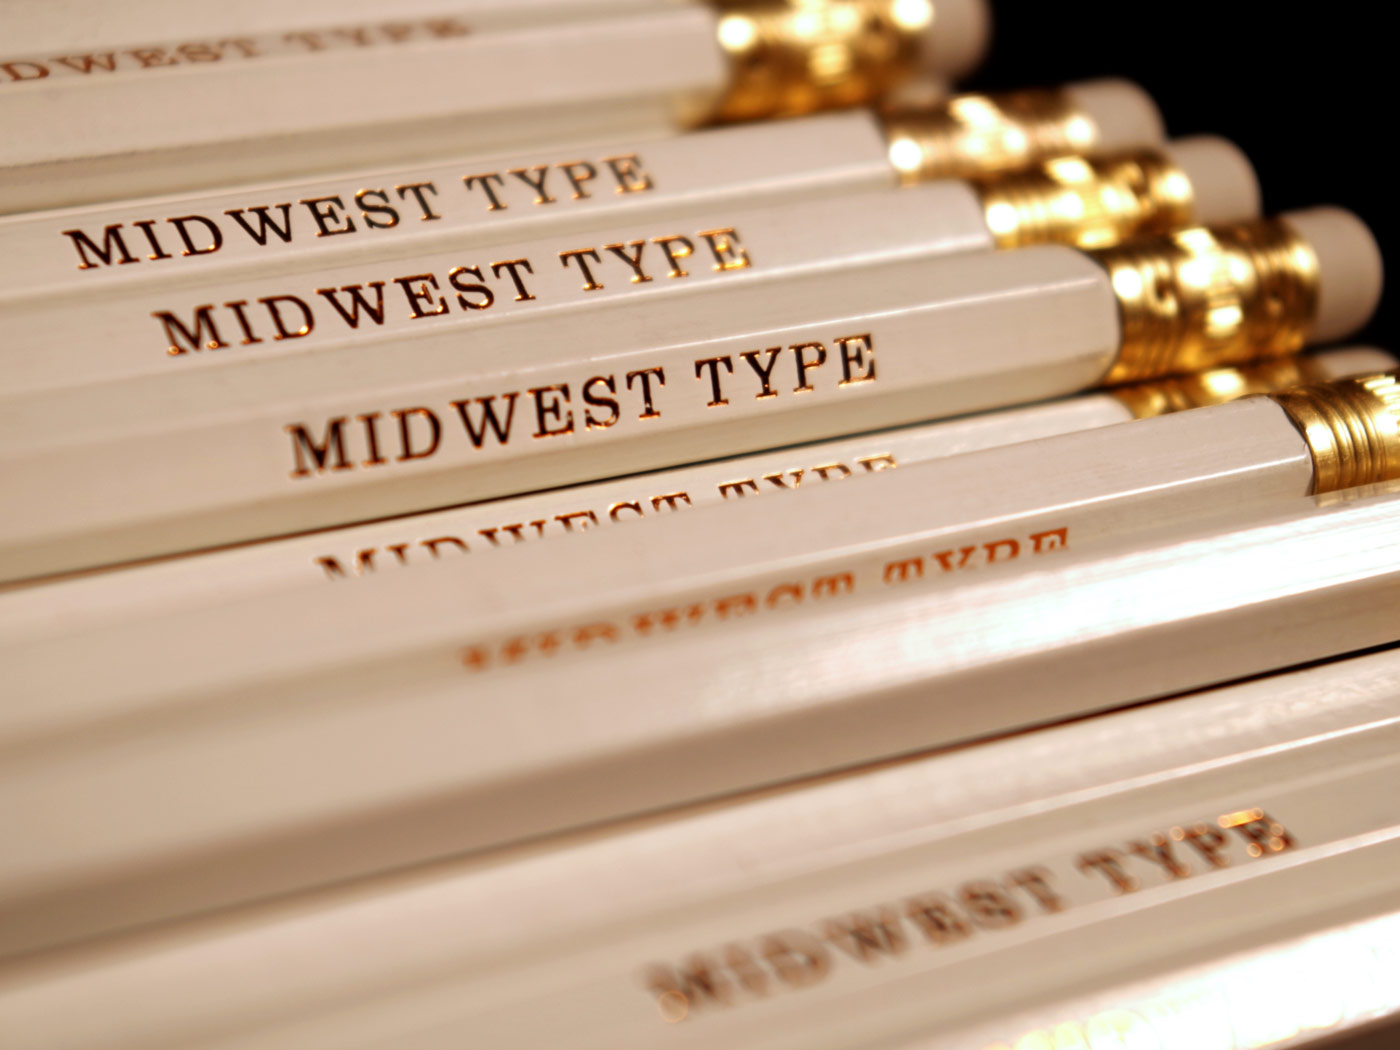 Midwest Type pencils